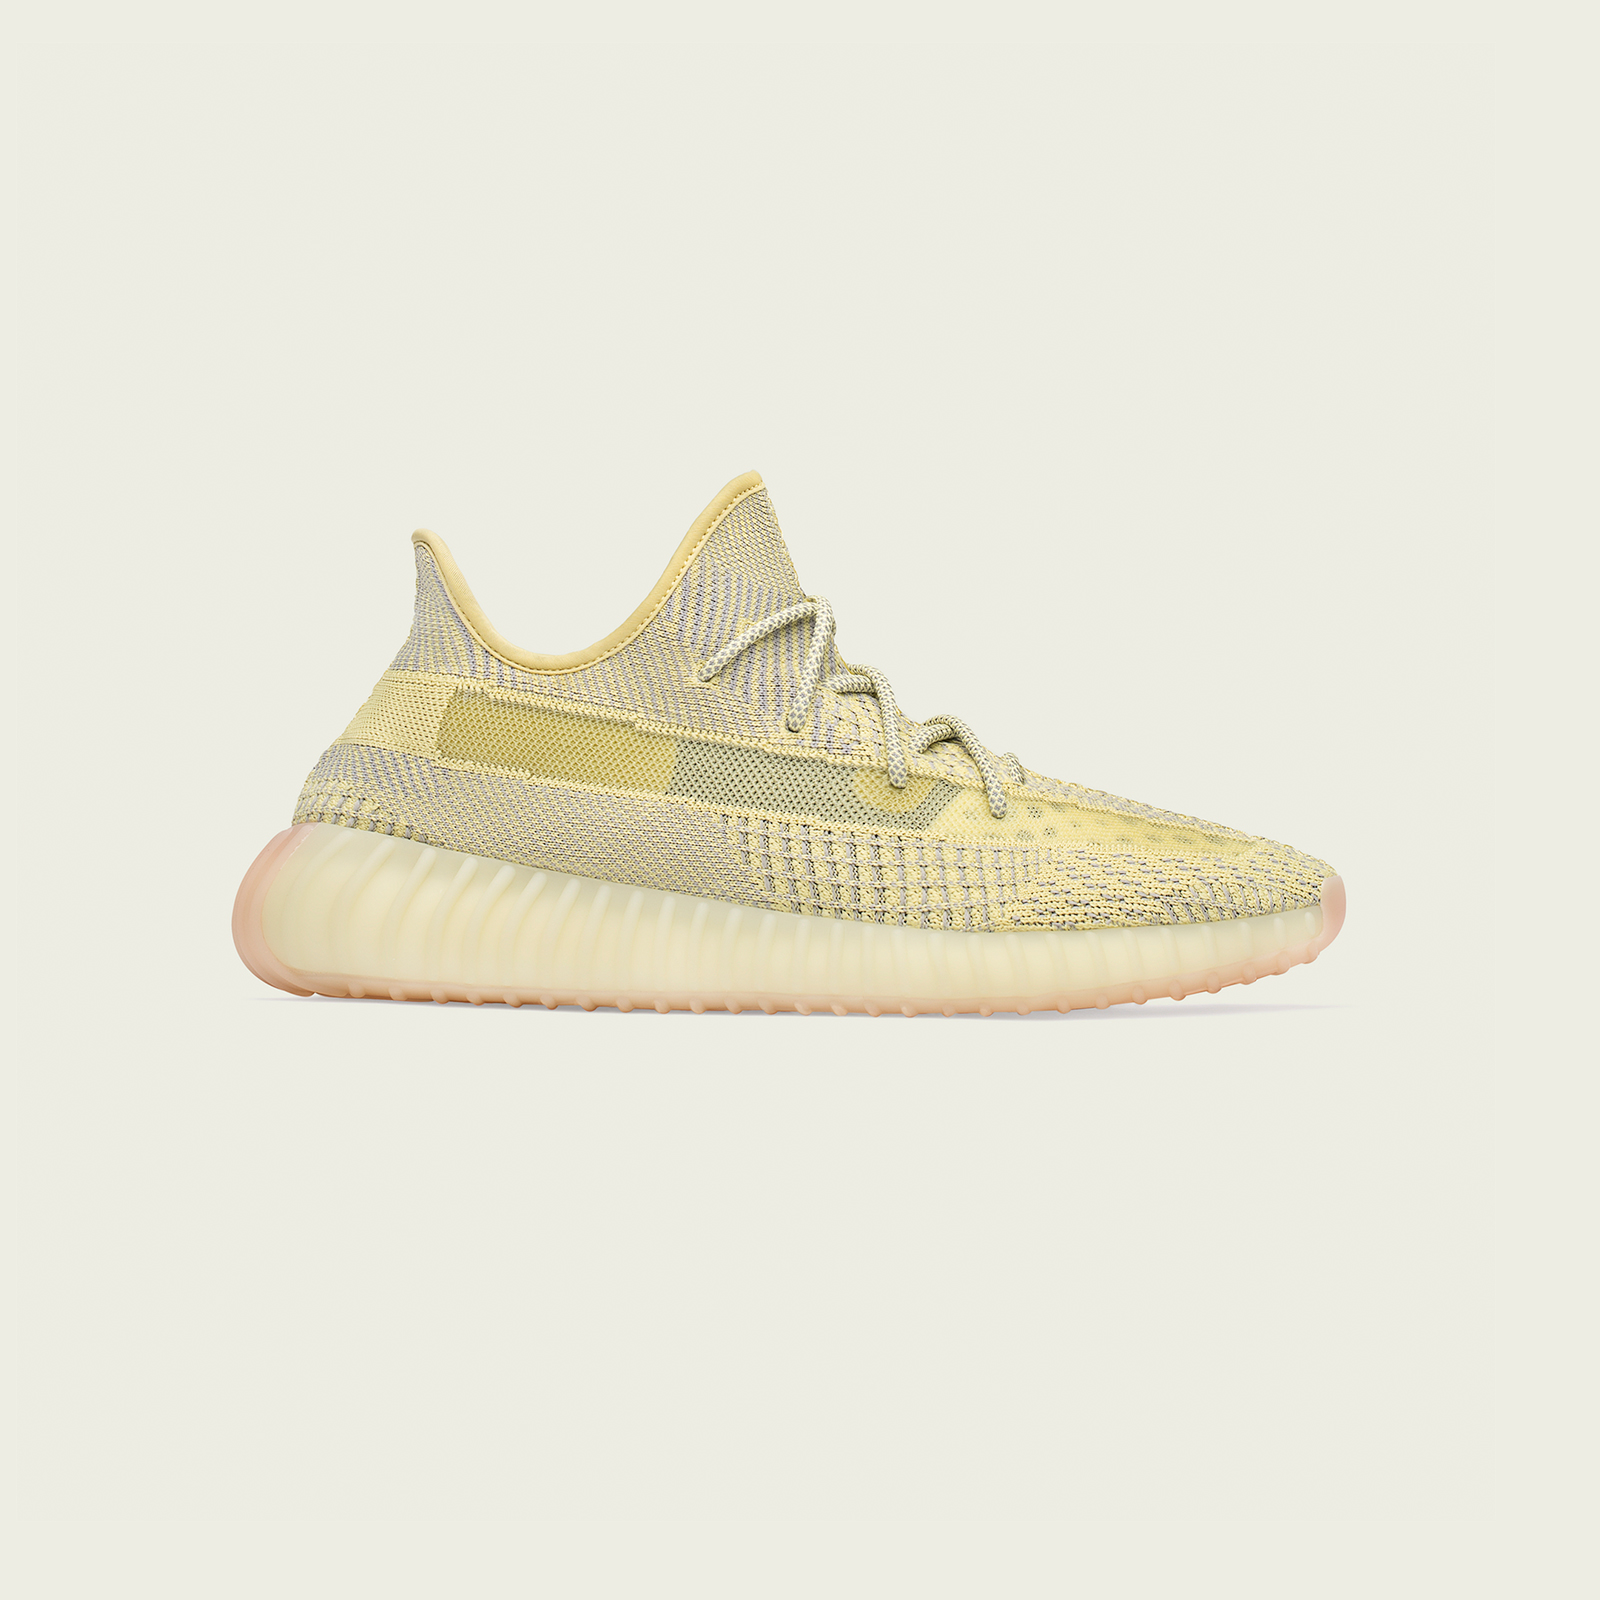 various styles watch wholesale adidas Yeezy Boost 350 V2 - Fv3250 - Sneakersnstuff ...